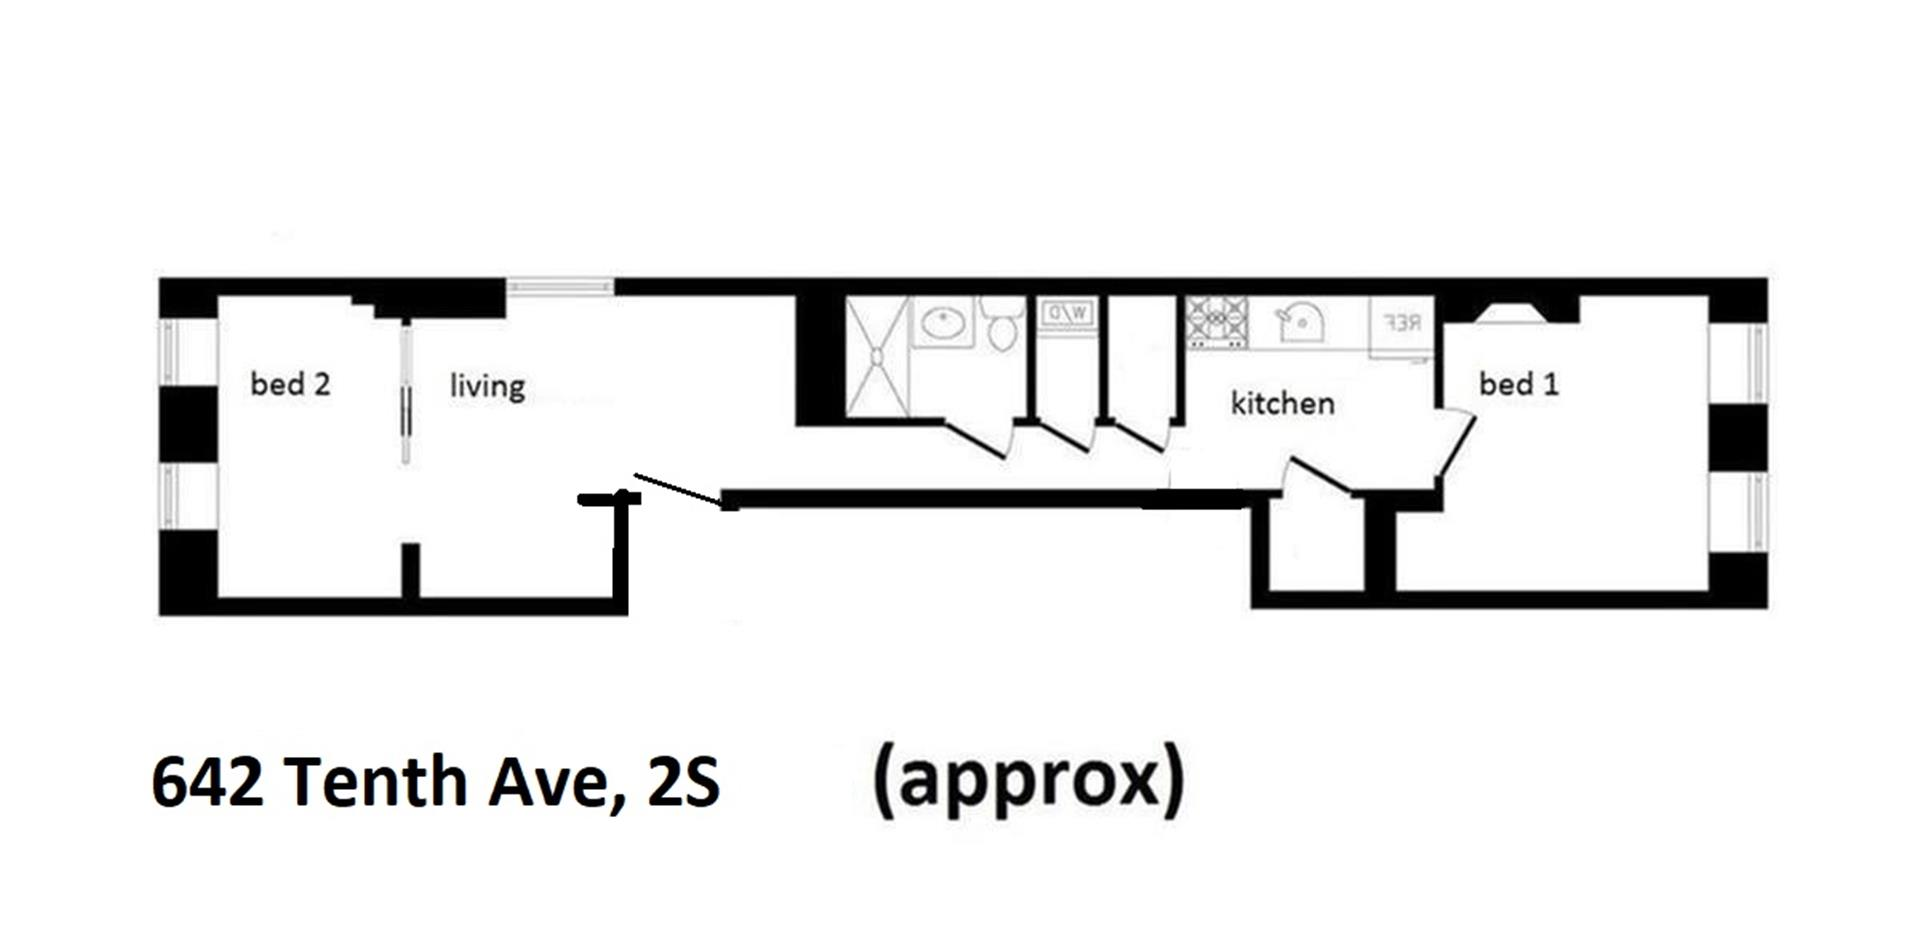 Floor plan of 642 Tenth Avenue, 2S - Clinton, New York